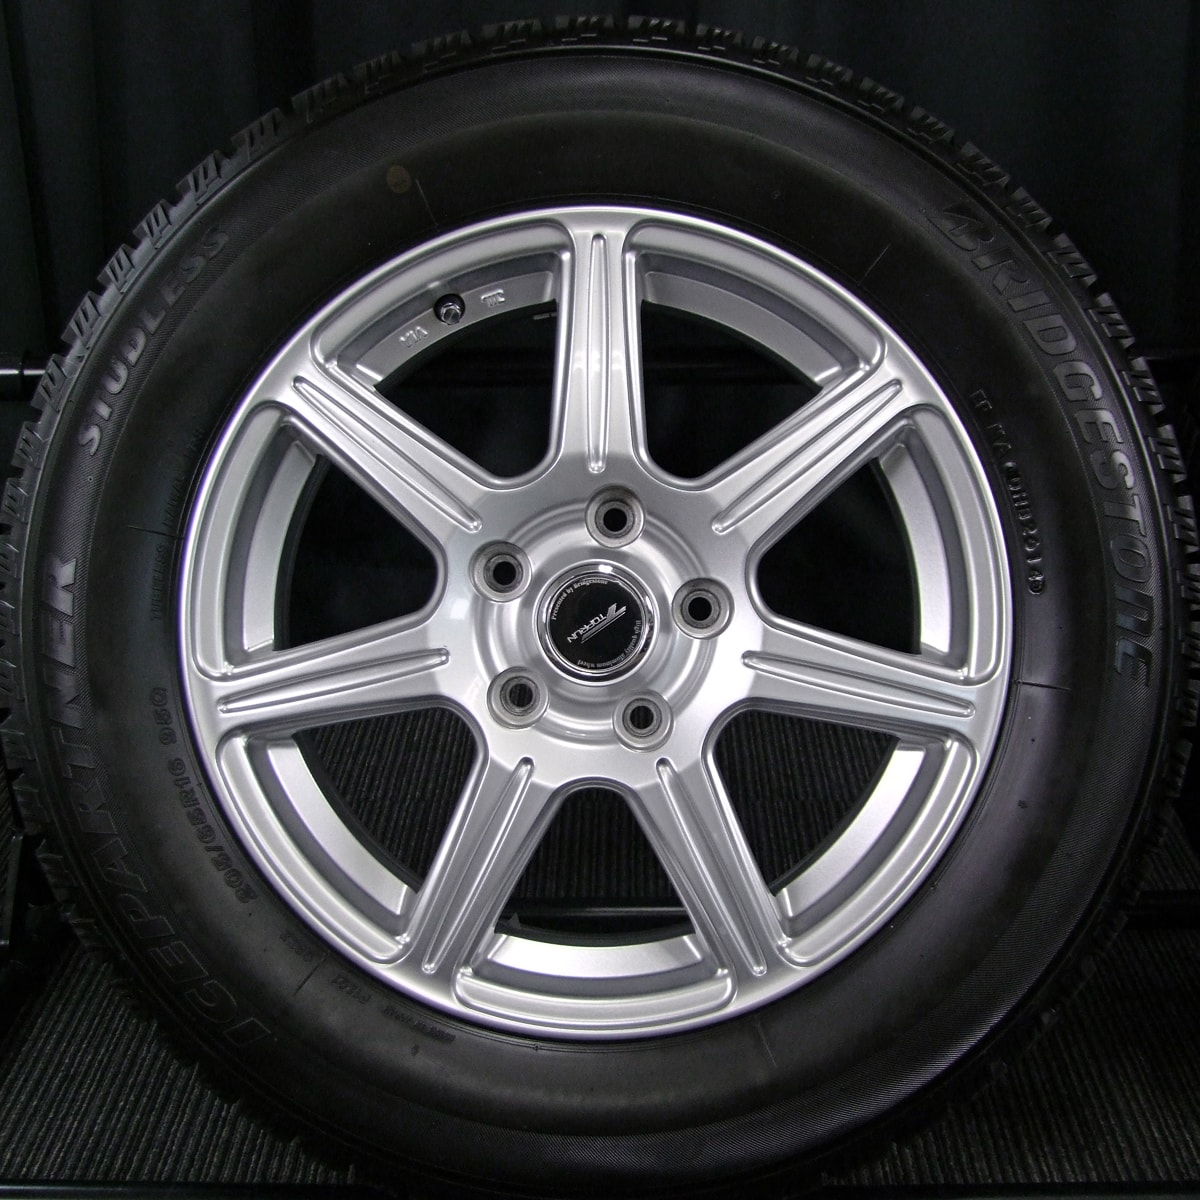 BRIDGESTONE TOPRUN R7 シルバー BRIDGESTONE ICEPARTNER 205/65R16 4本SET